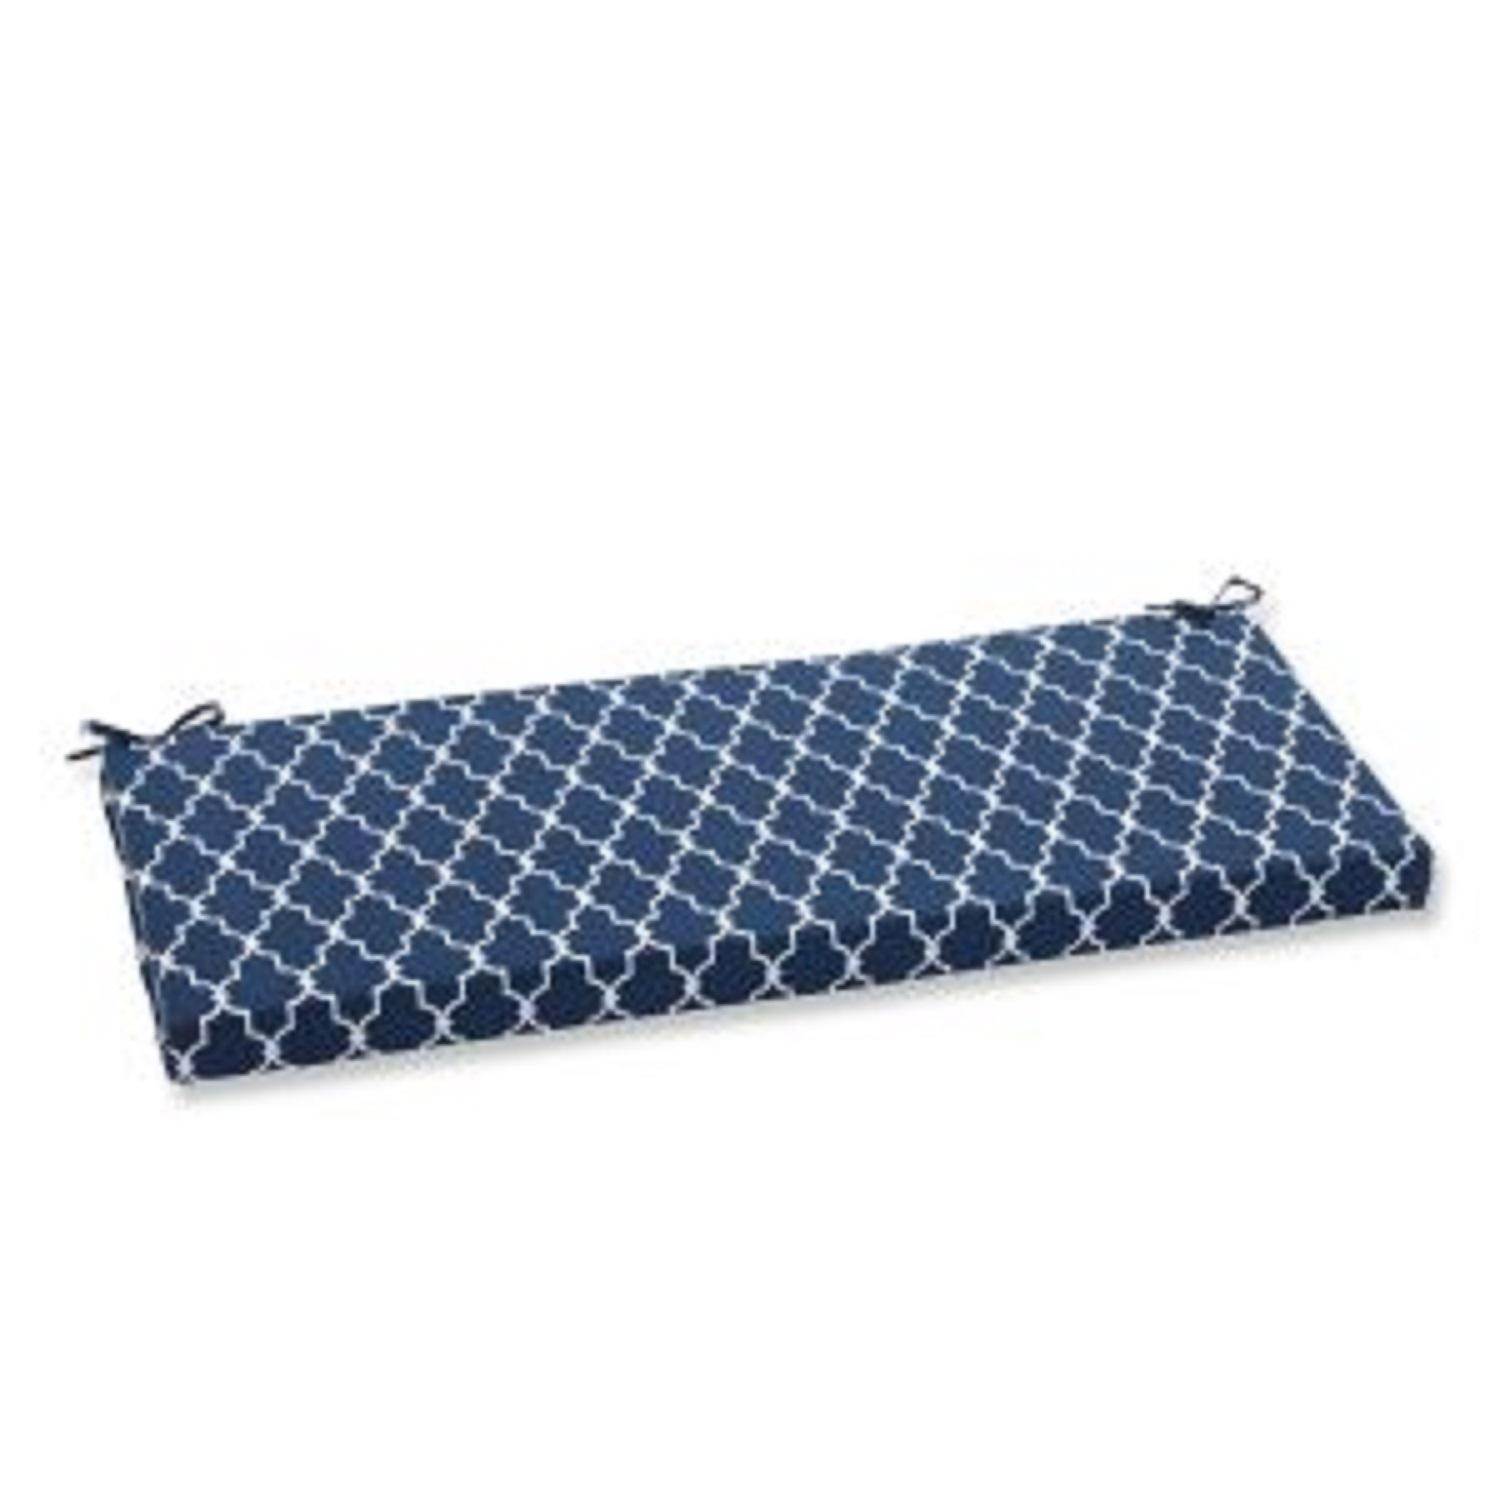 "45"" Moroccan Gate Navy Blue and White Bench Cushion"